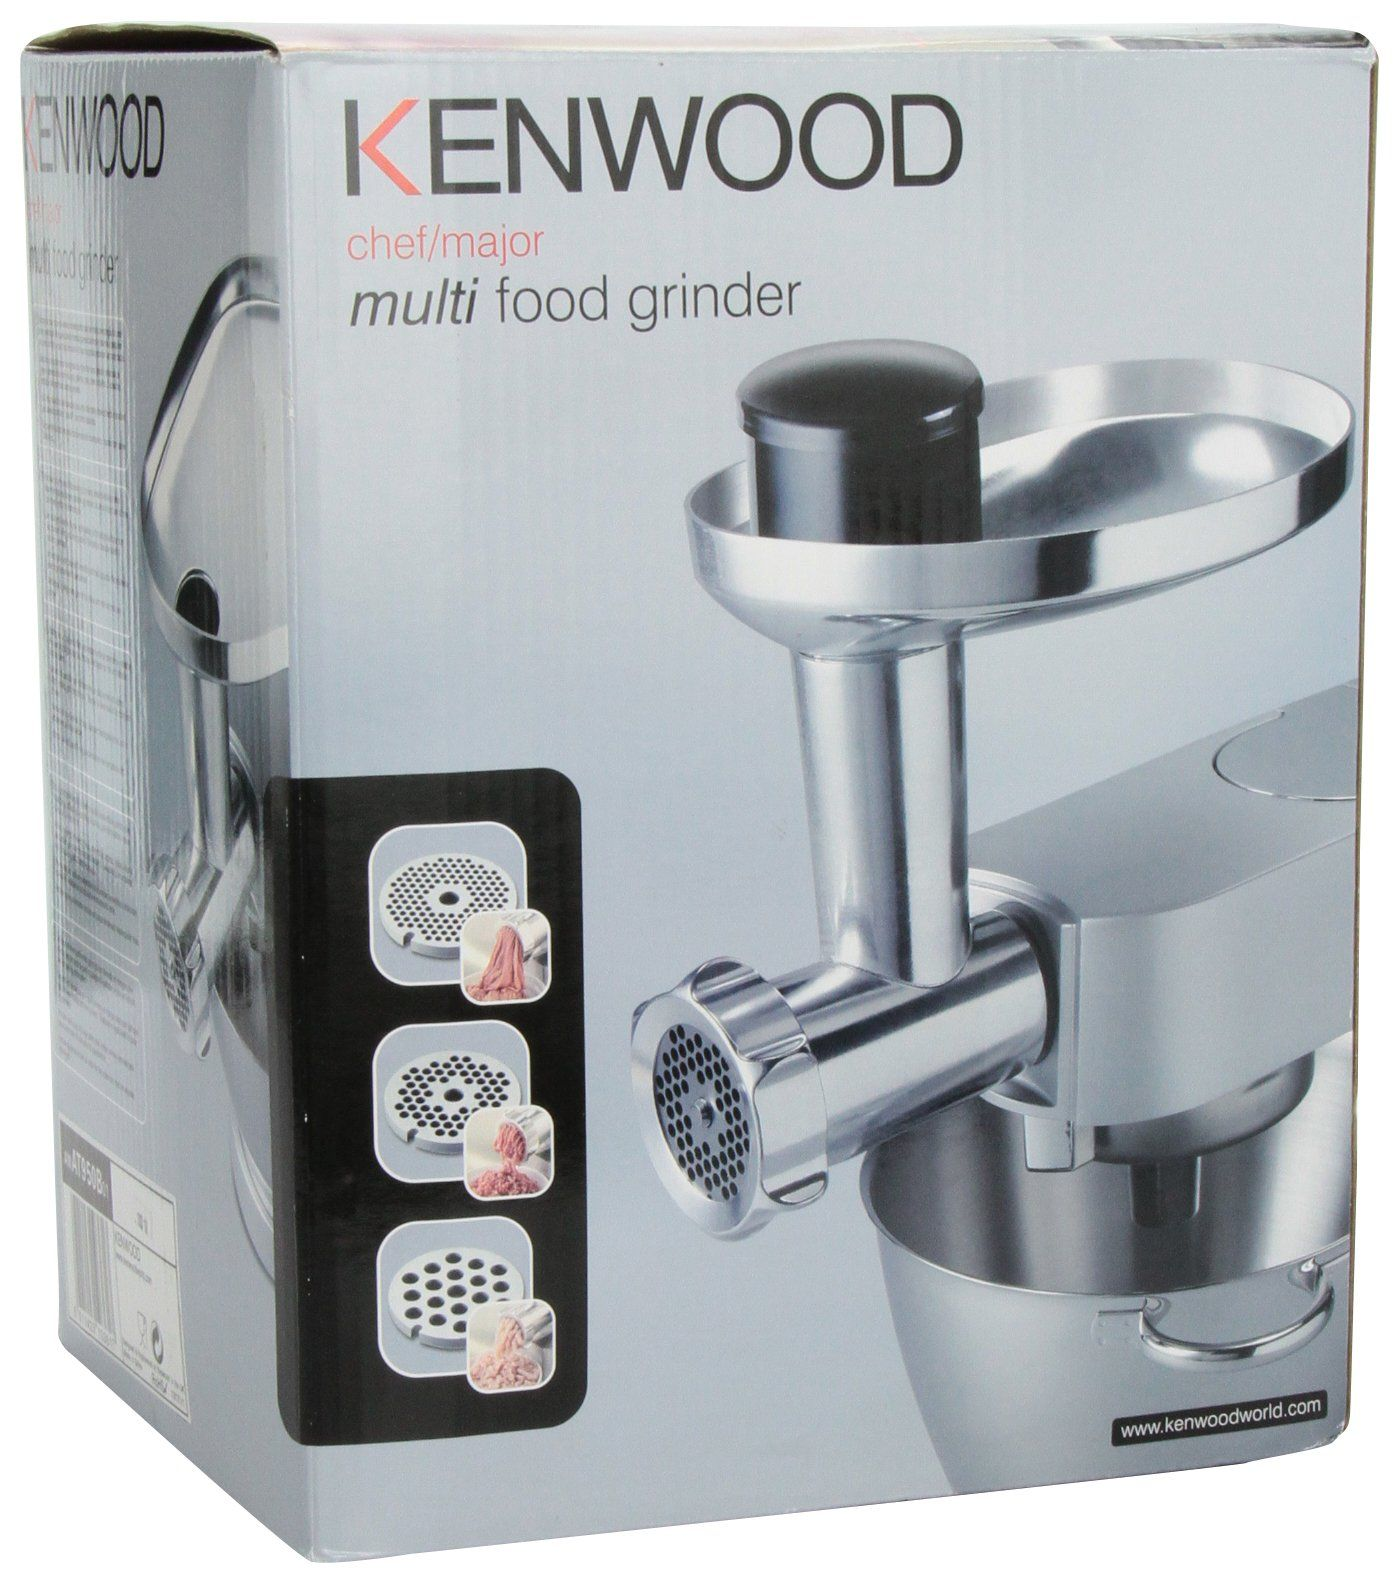 Kenwood Mincer and Food Grinder Attachment AT950 - for Kenwood Chef ...